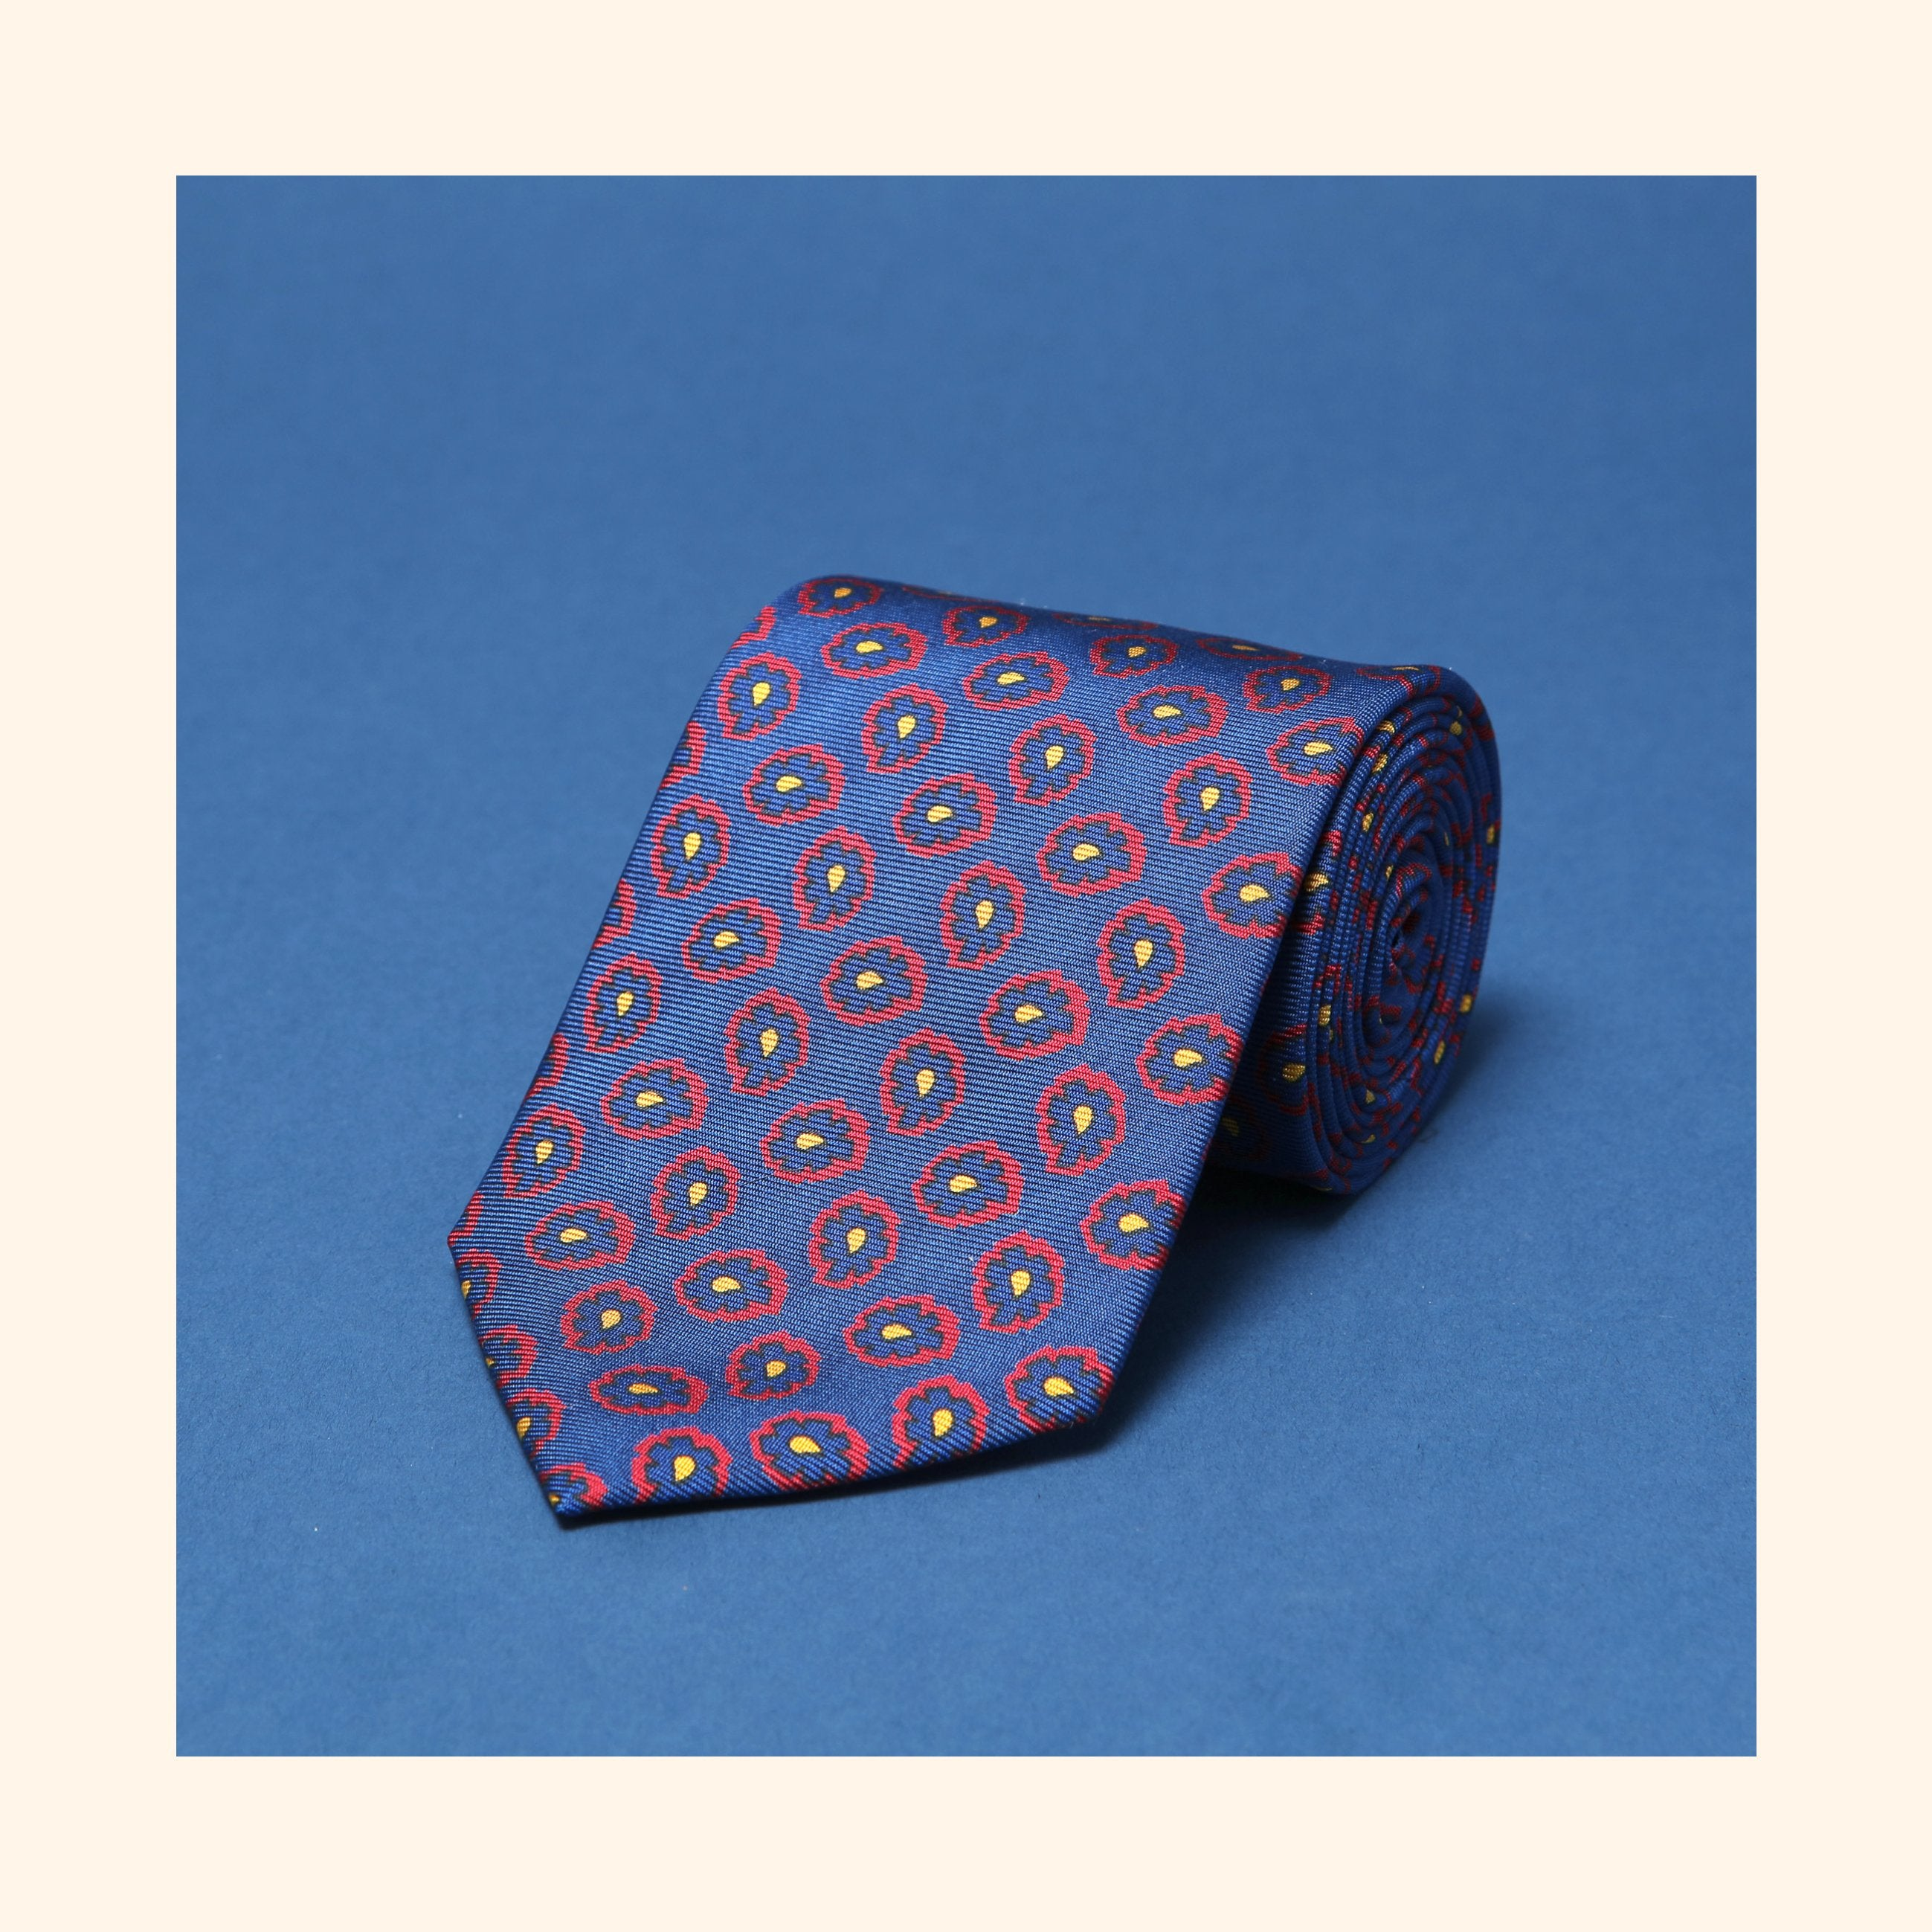 "â""– 037 - Blue Abstract Paisley Screen-Printed 36oz Silk Tie"